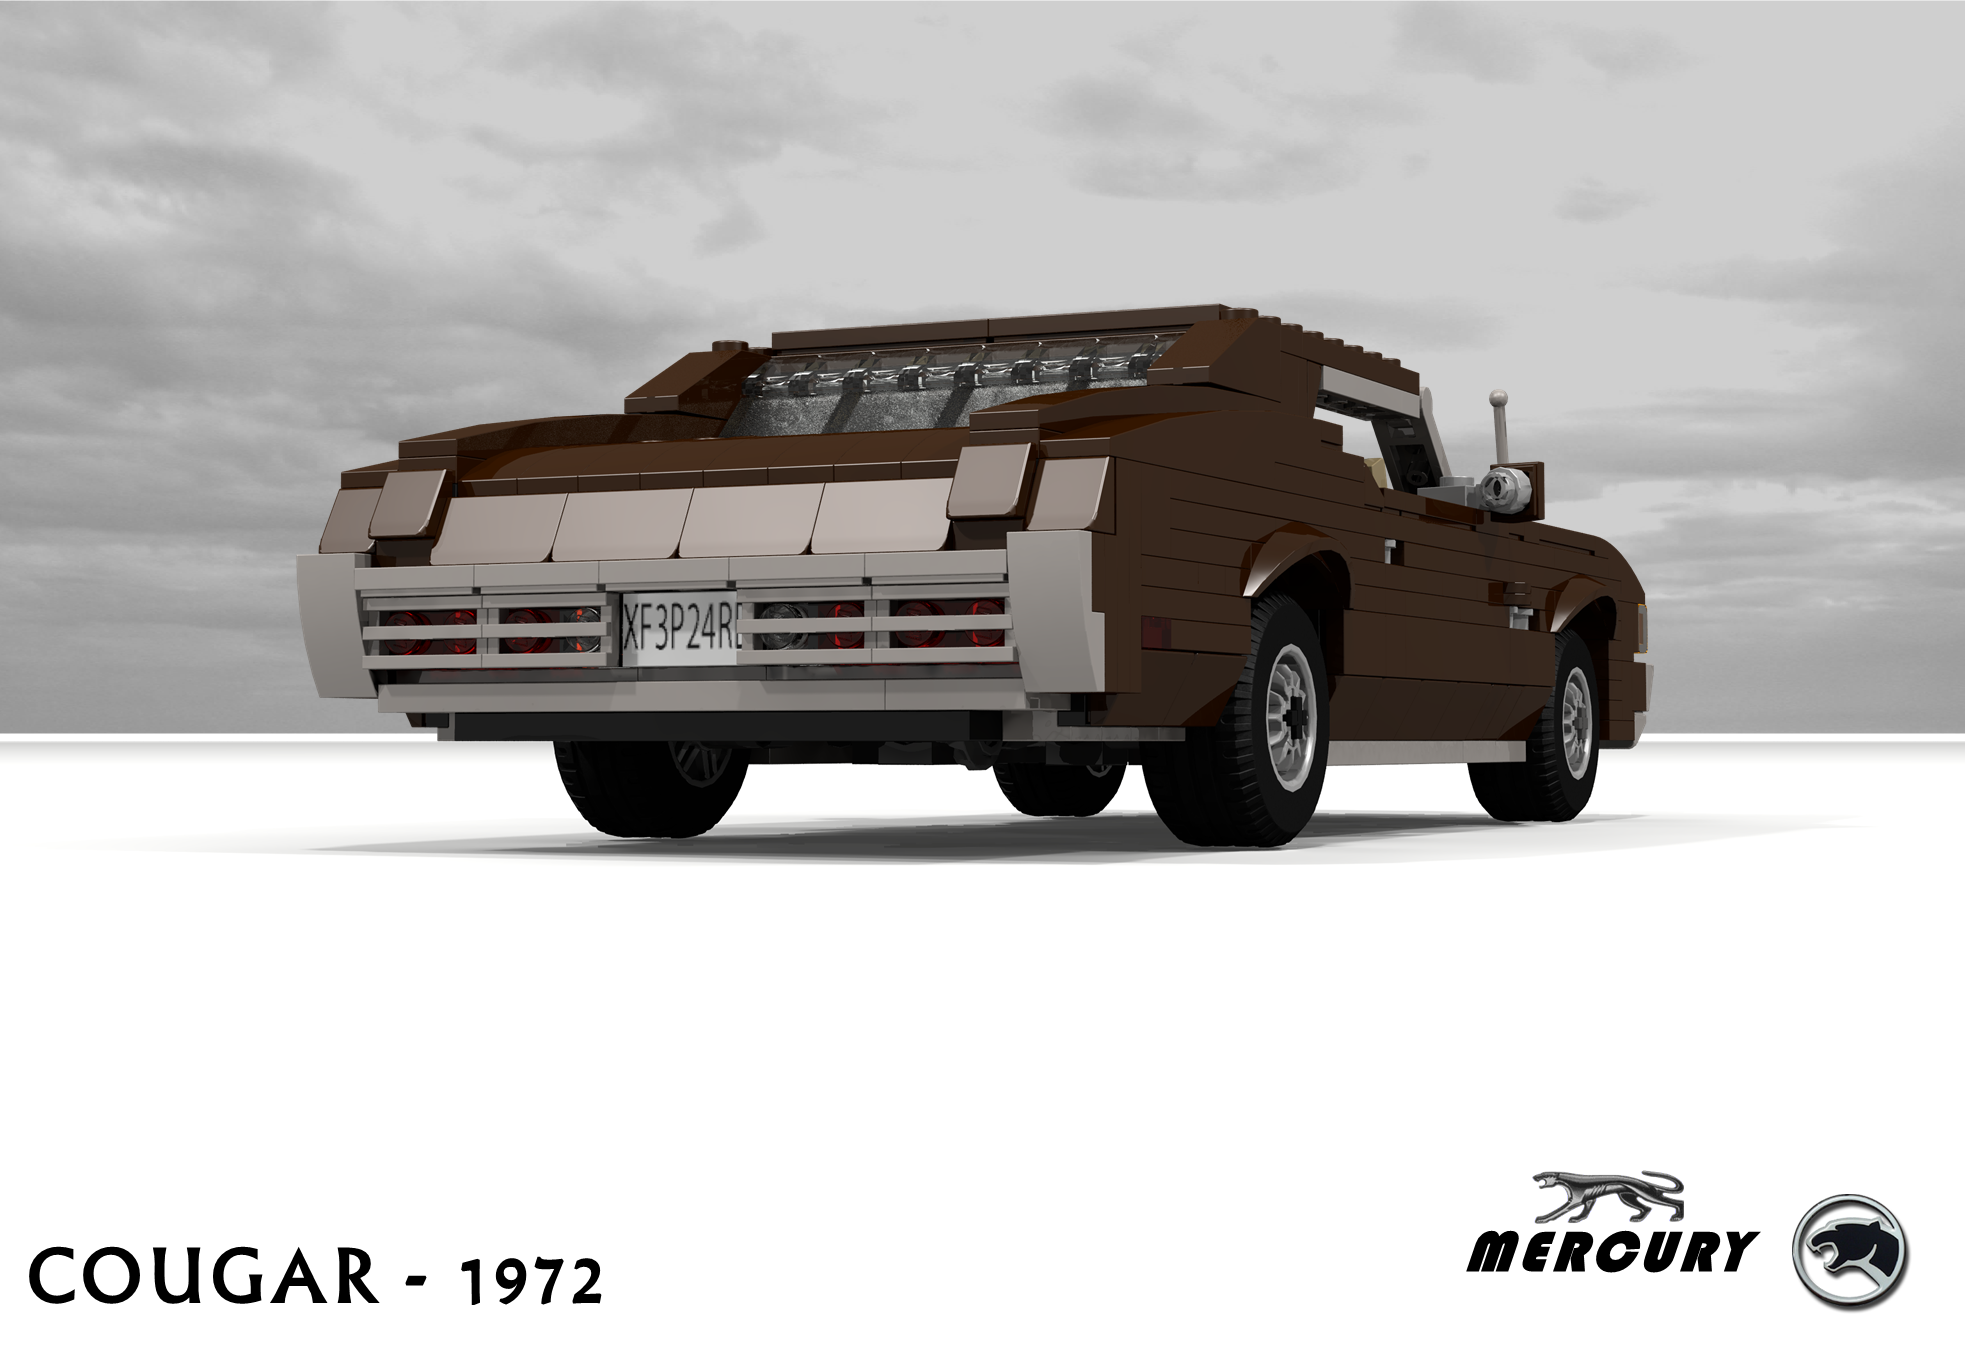 mercury_cougar_1972_coupe_09.png